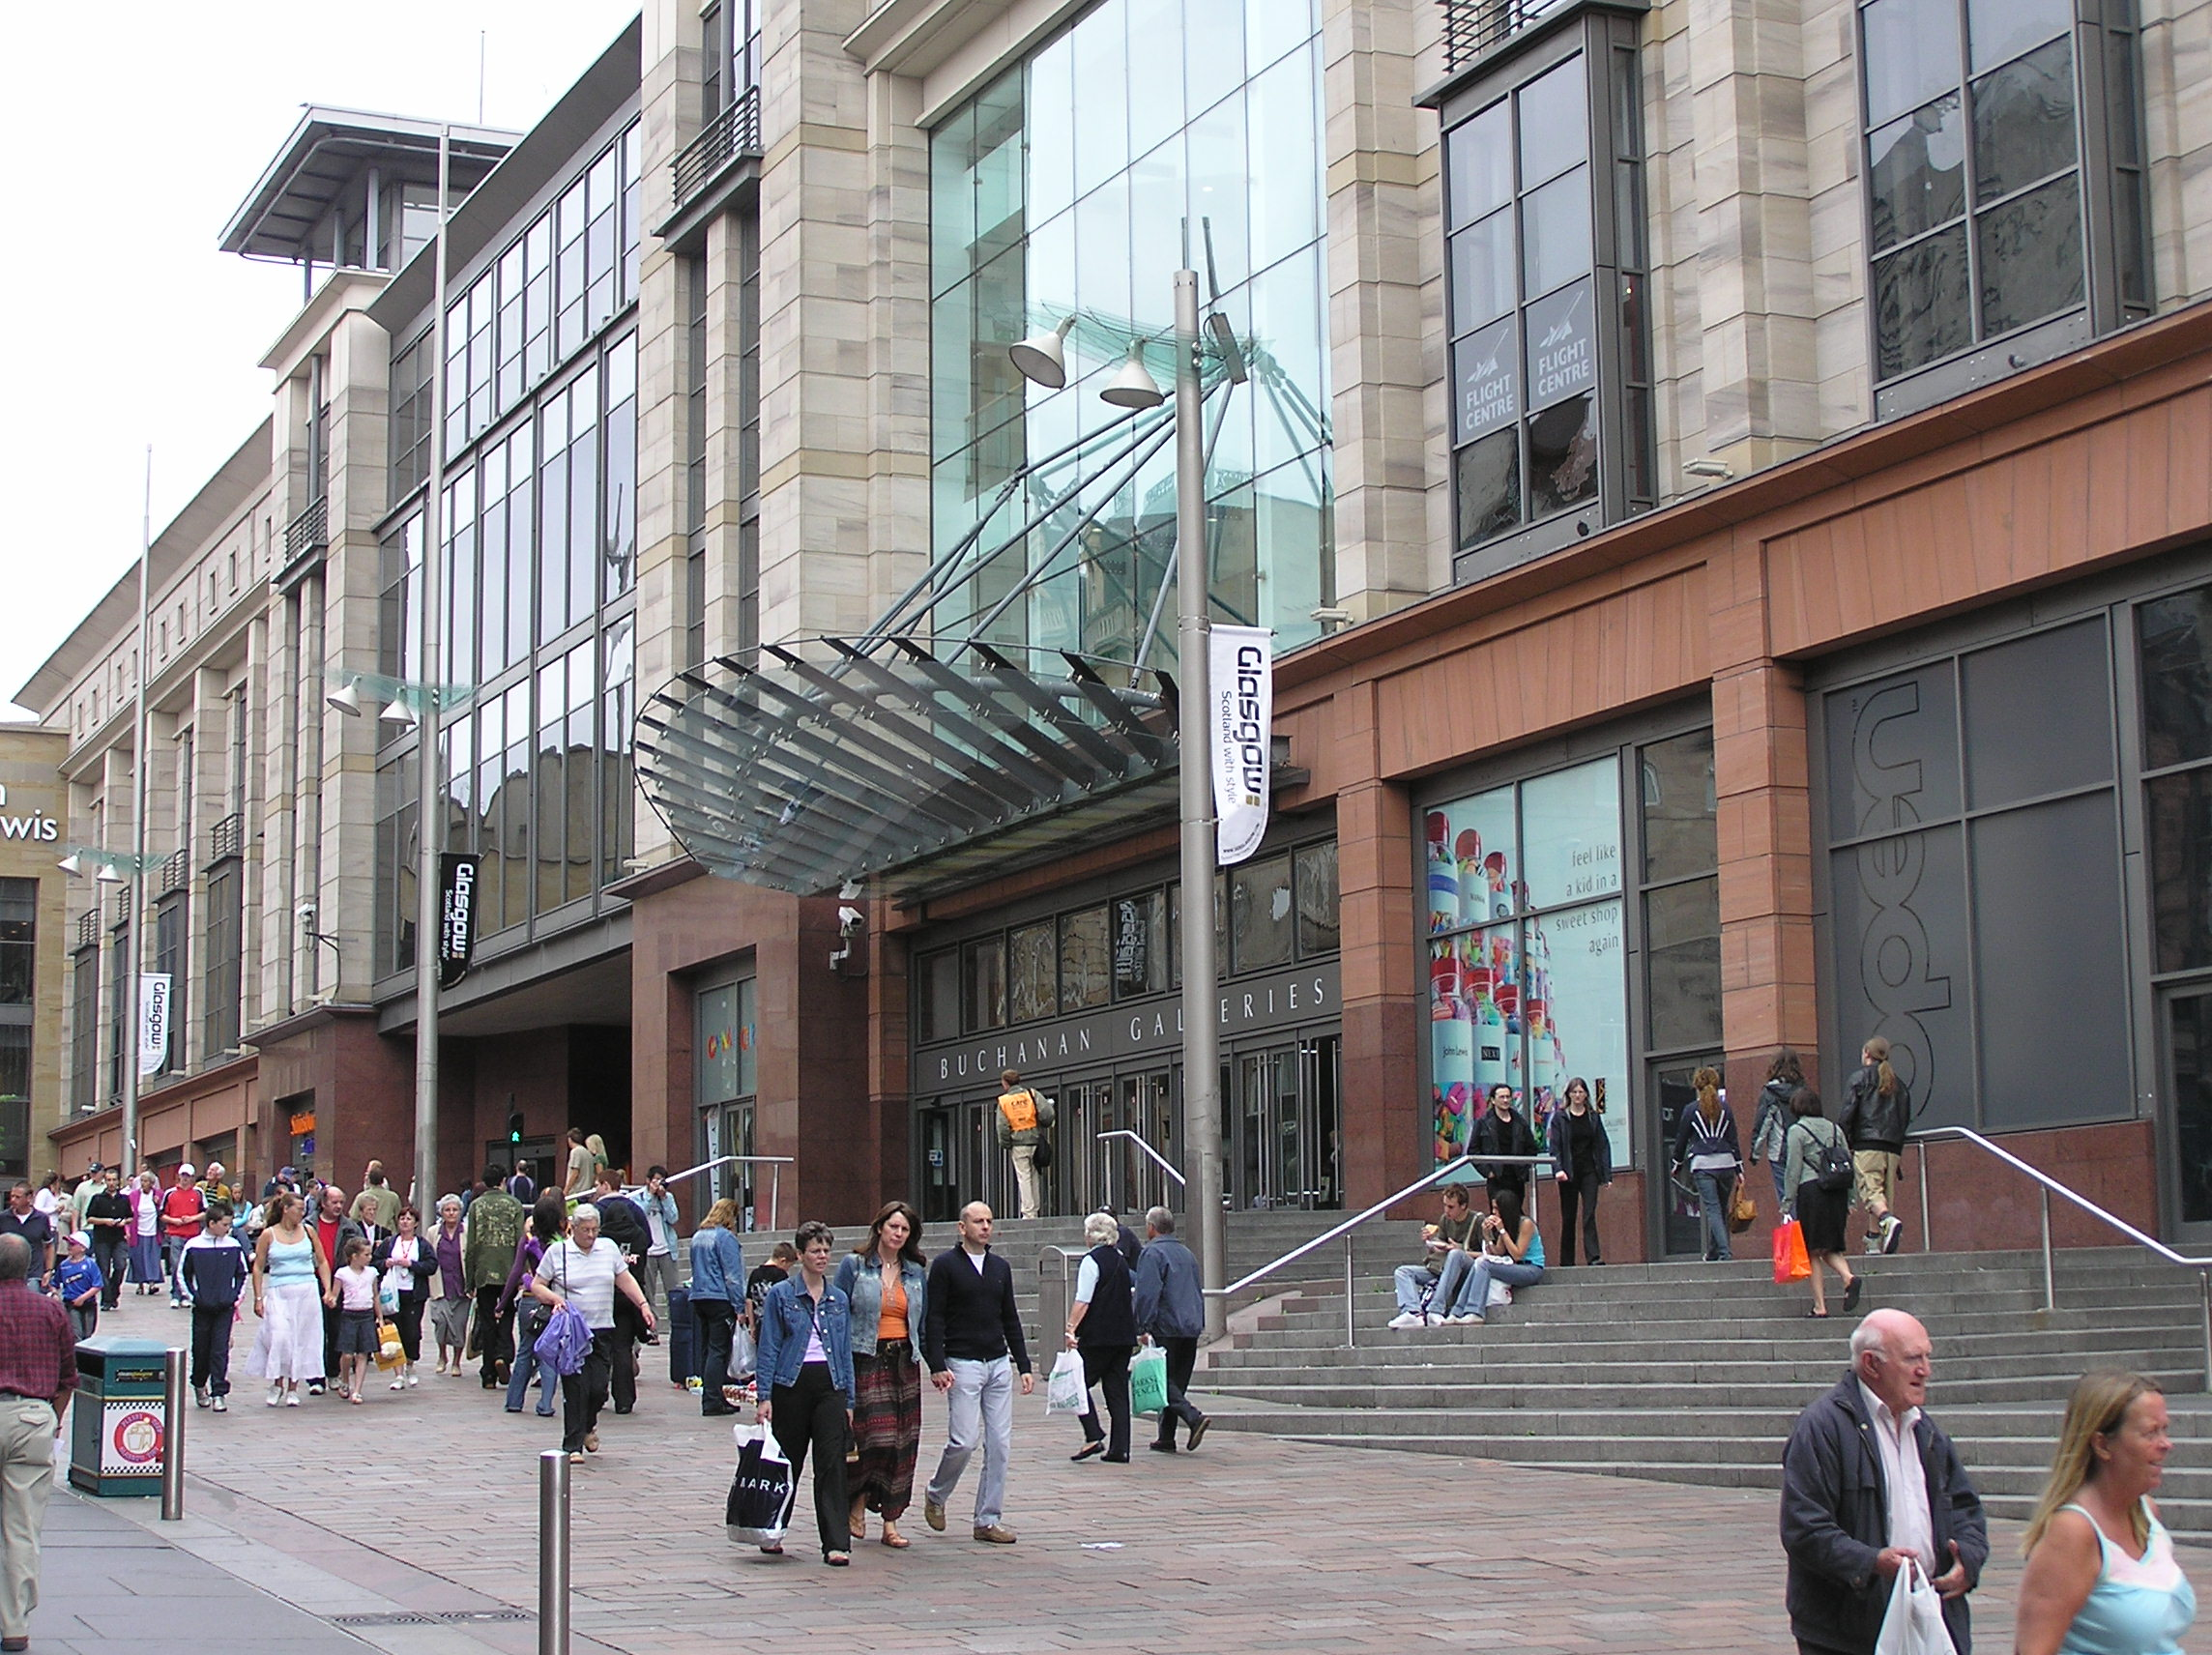 wfm buchanan galleries outside.jpg